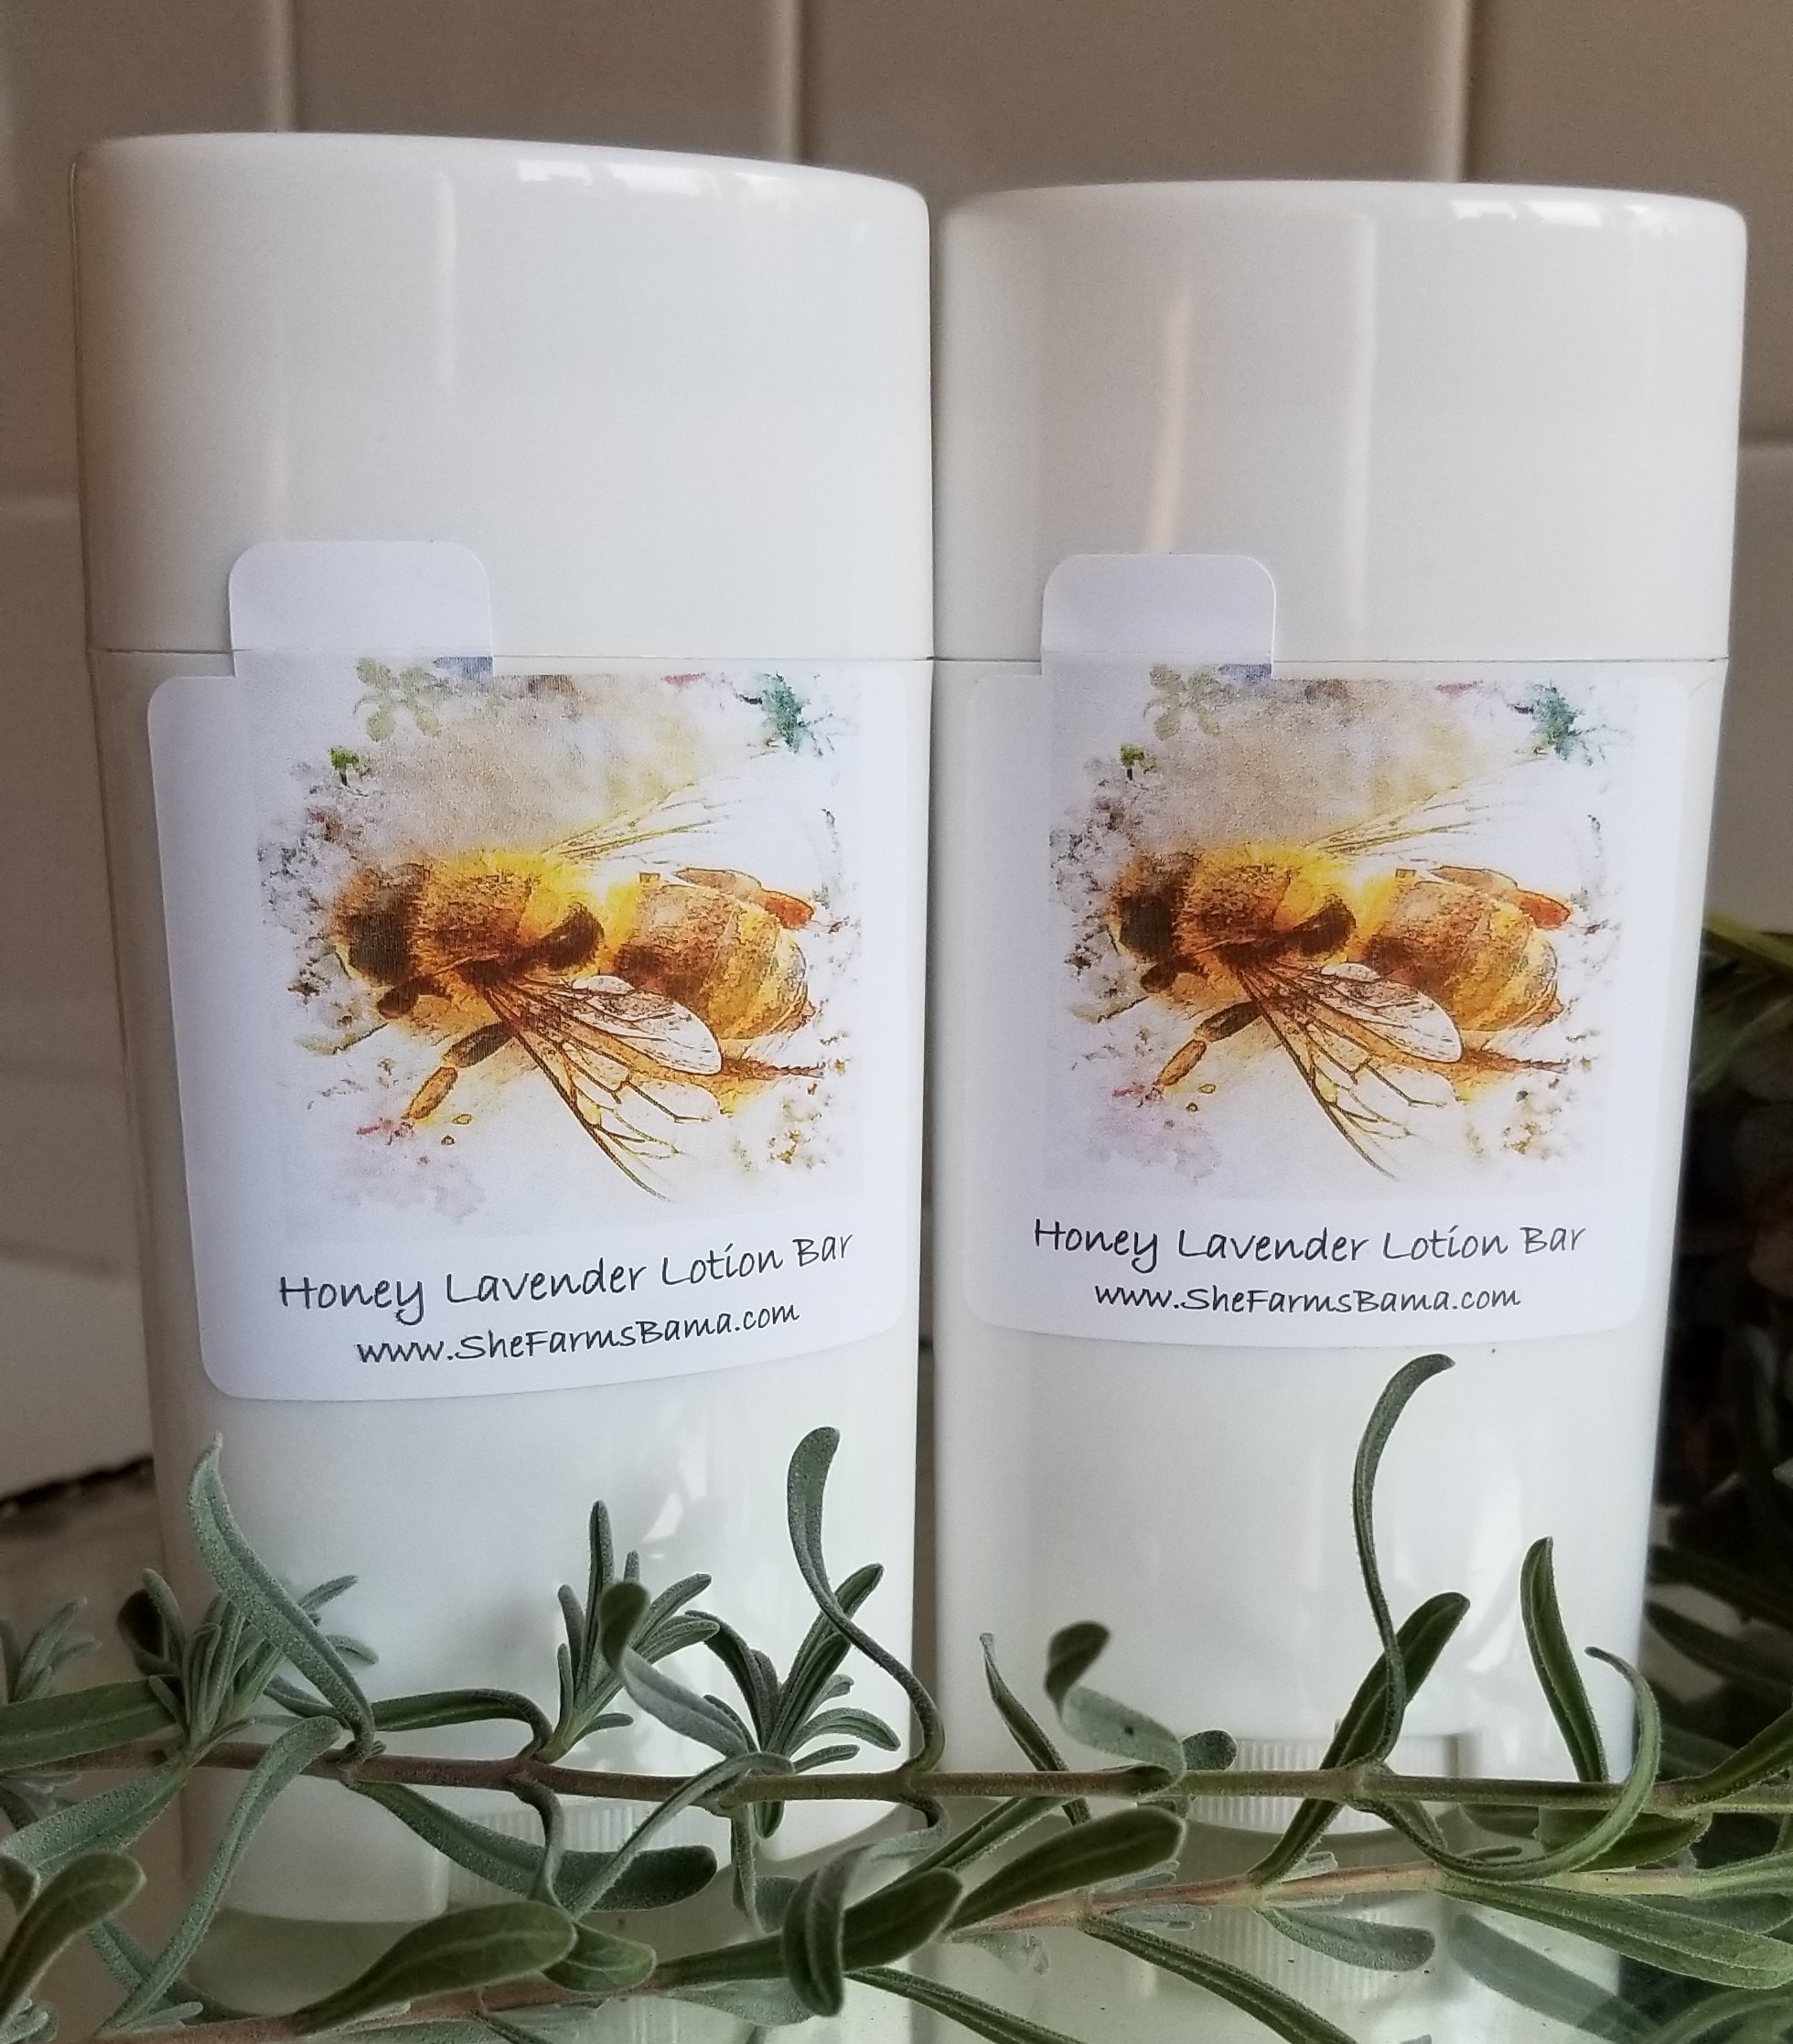 Honey Lavender Lotion Bar 00002